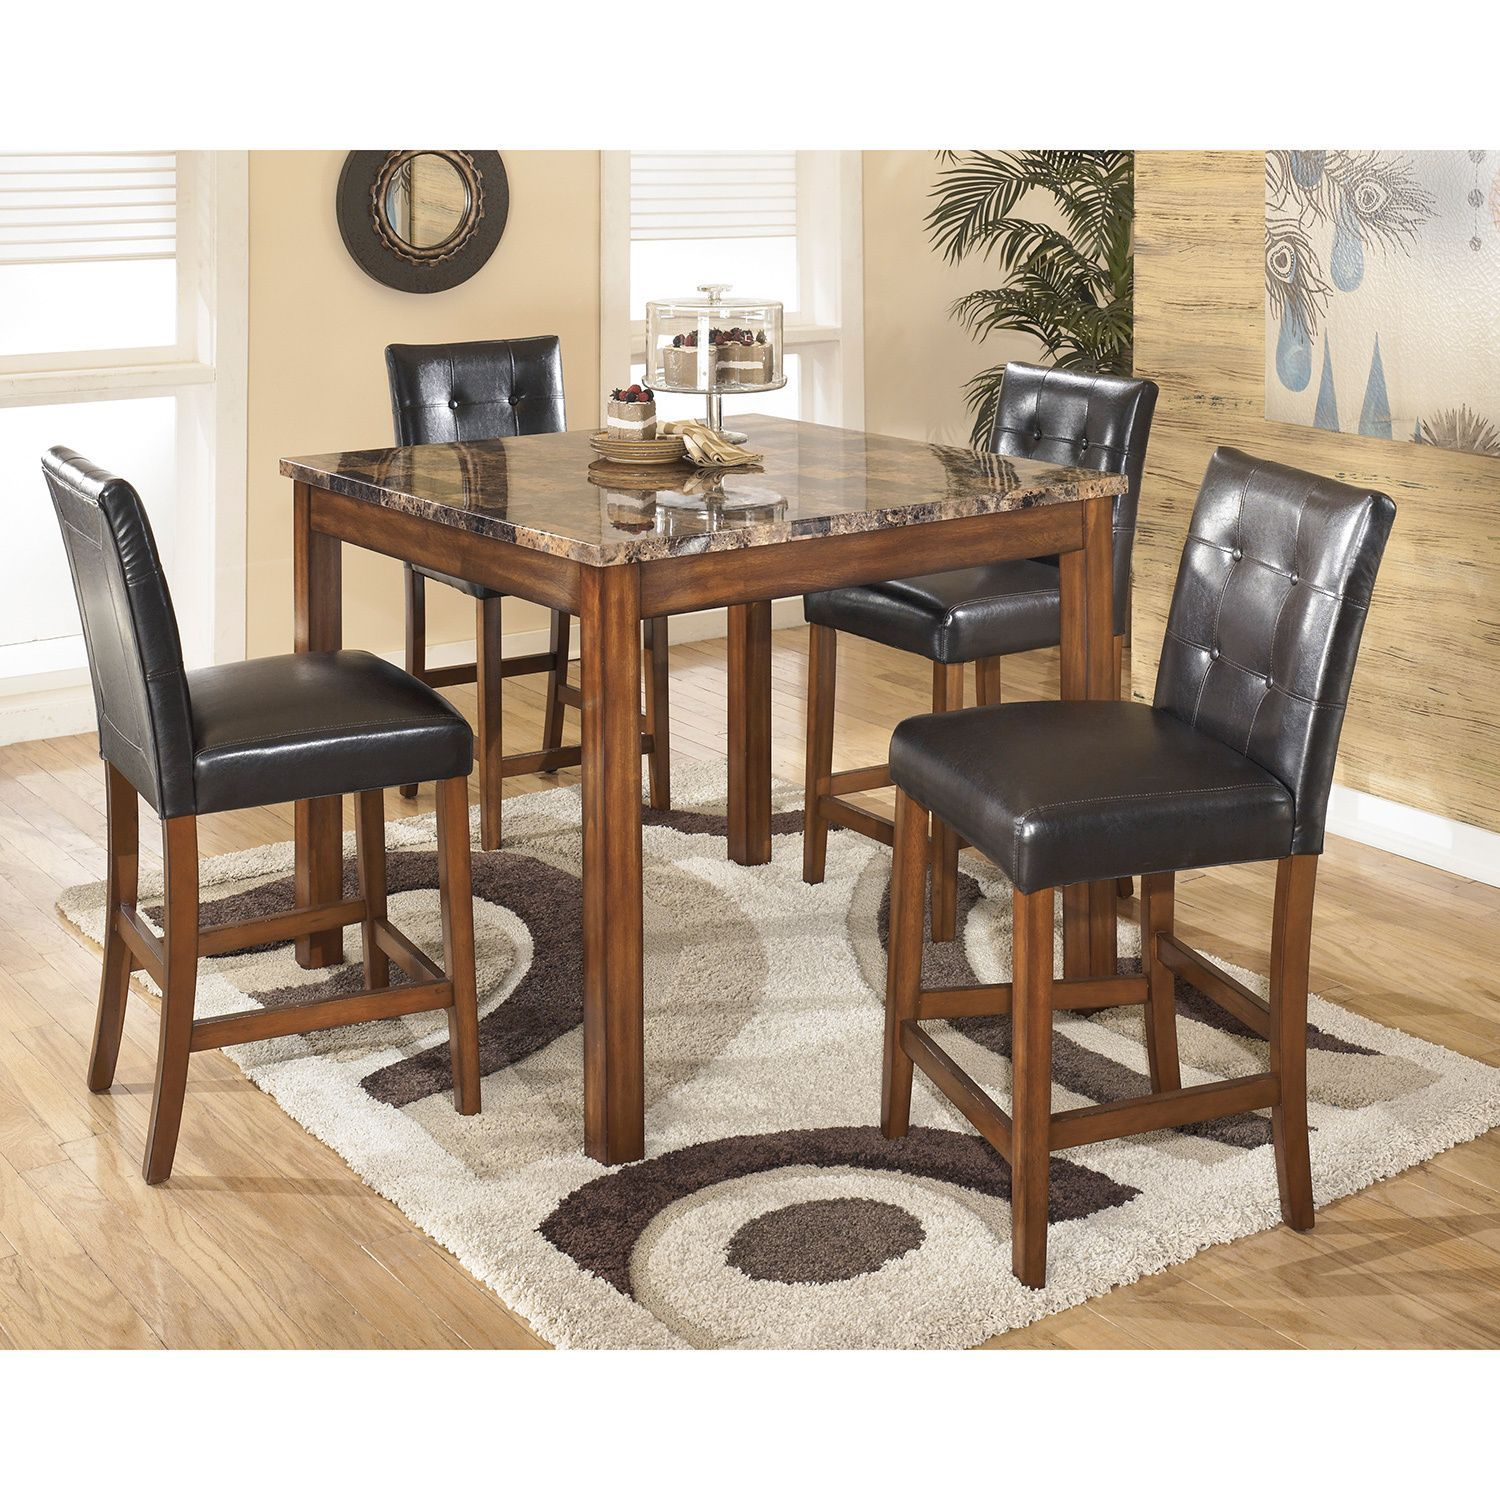 Signature design by ashley theo square counter table set by